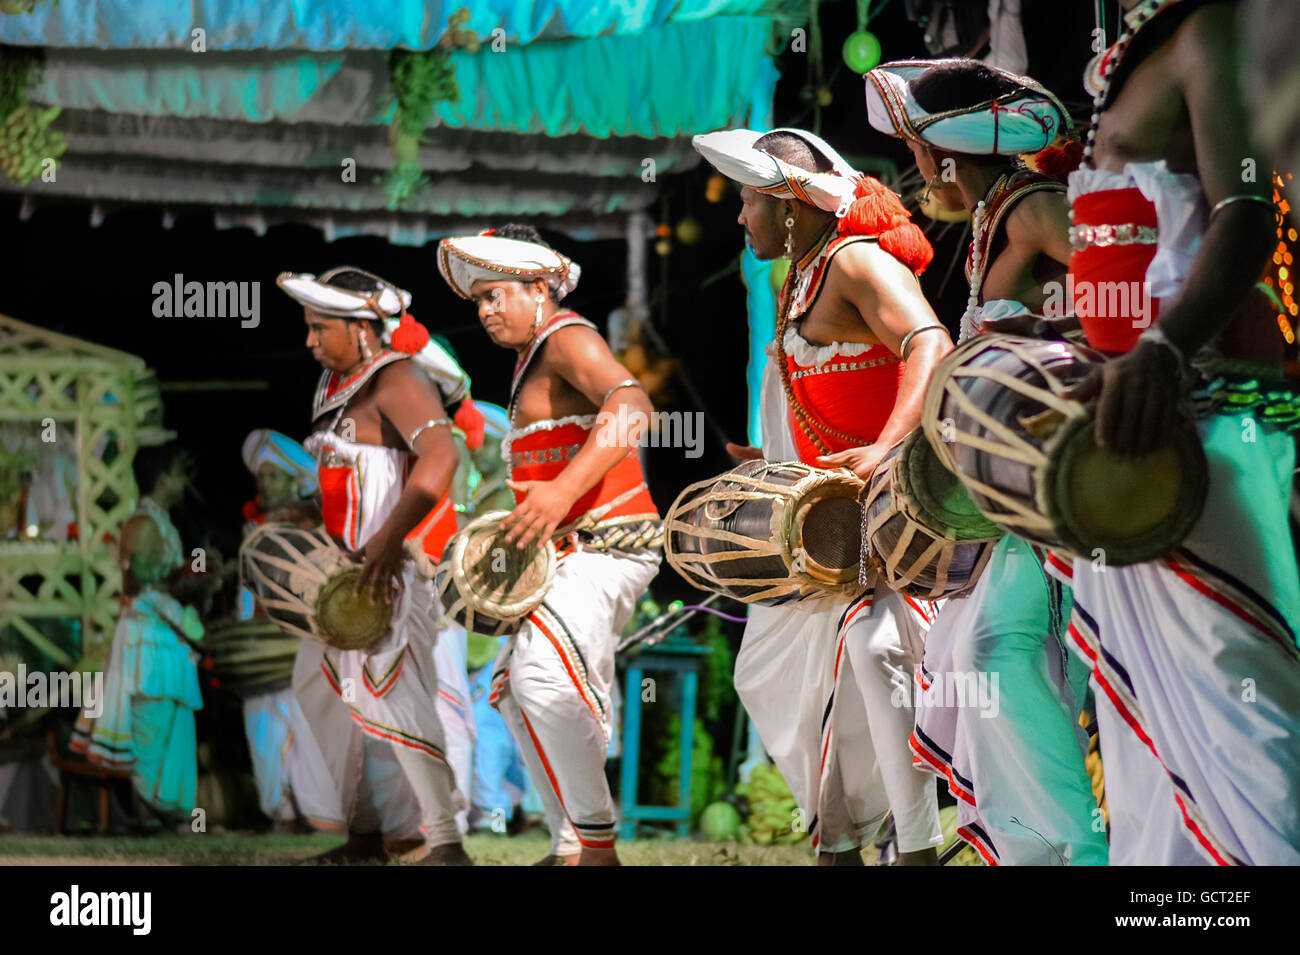 traditional dancing in sri lanka Kandyan dancing and drumming is sri lanka's iconic performing art, and you're unlikely to spend long in the city without seeing a troupe of performers.